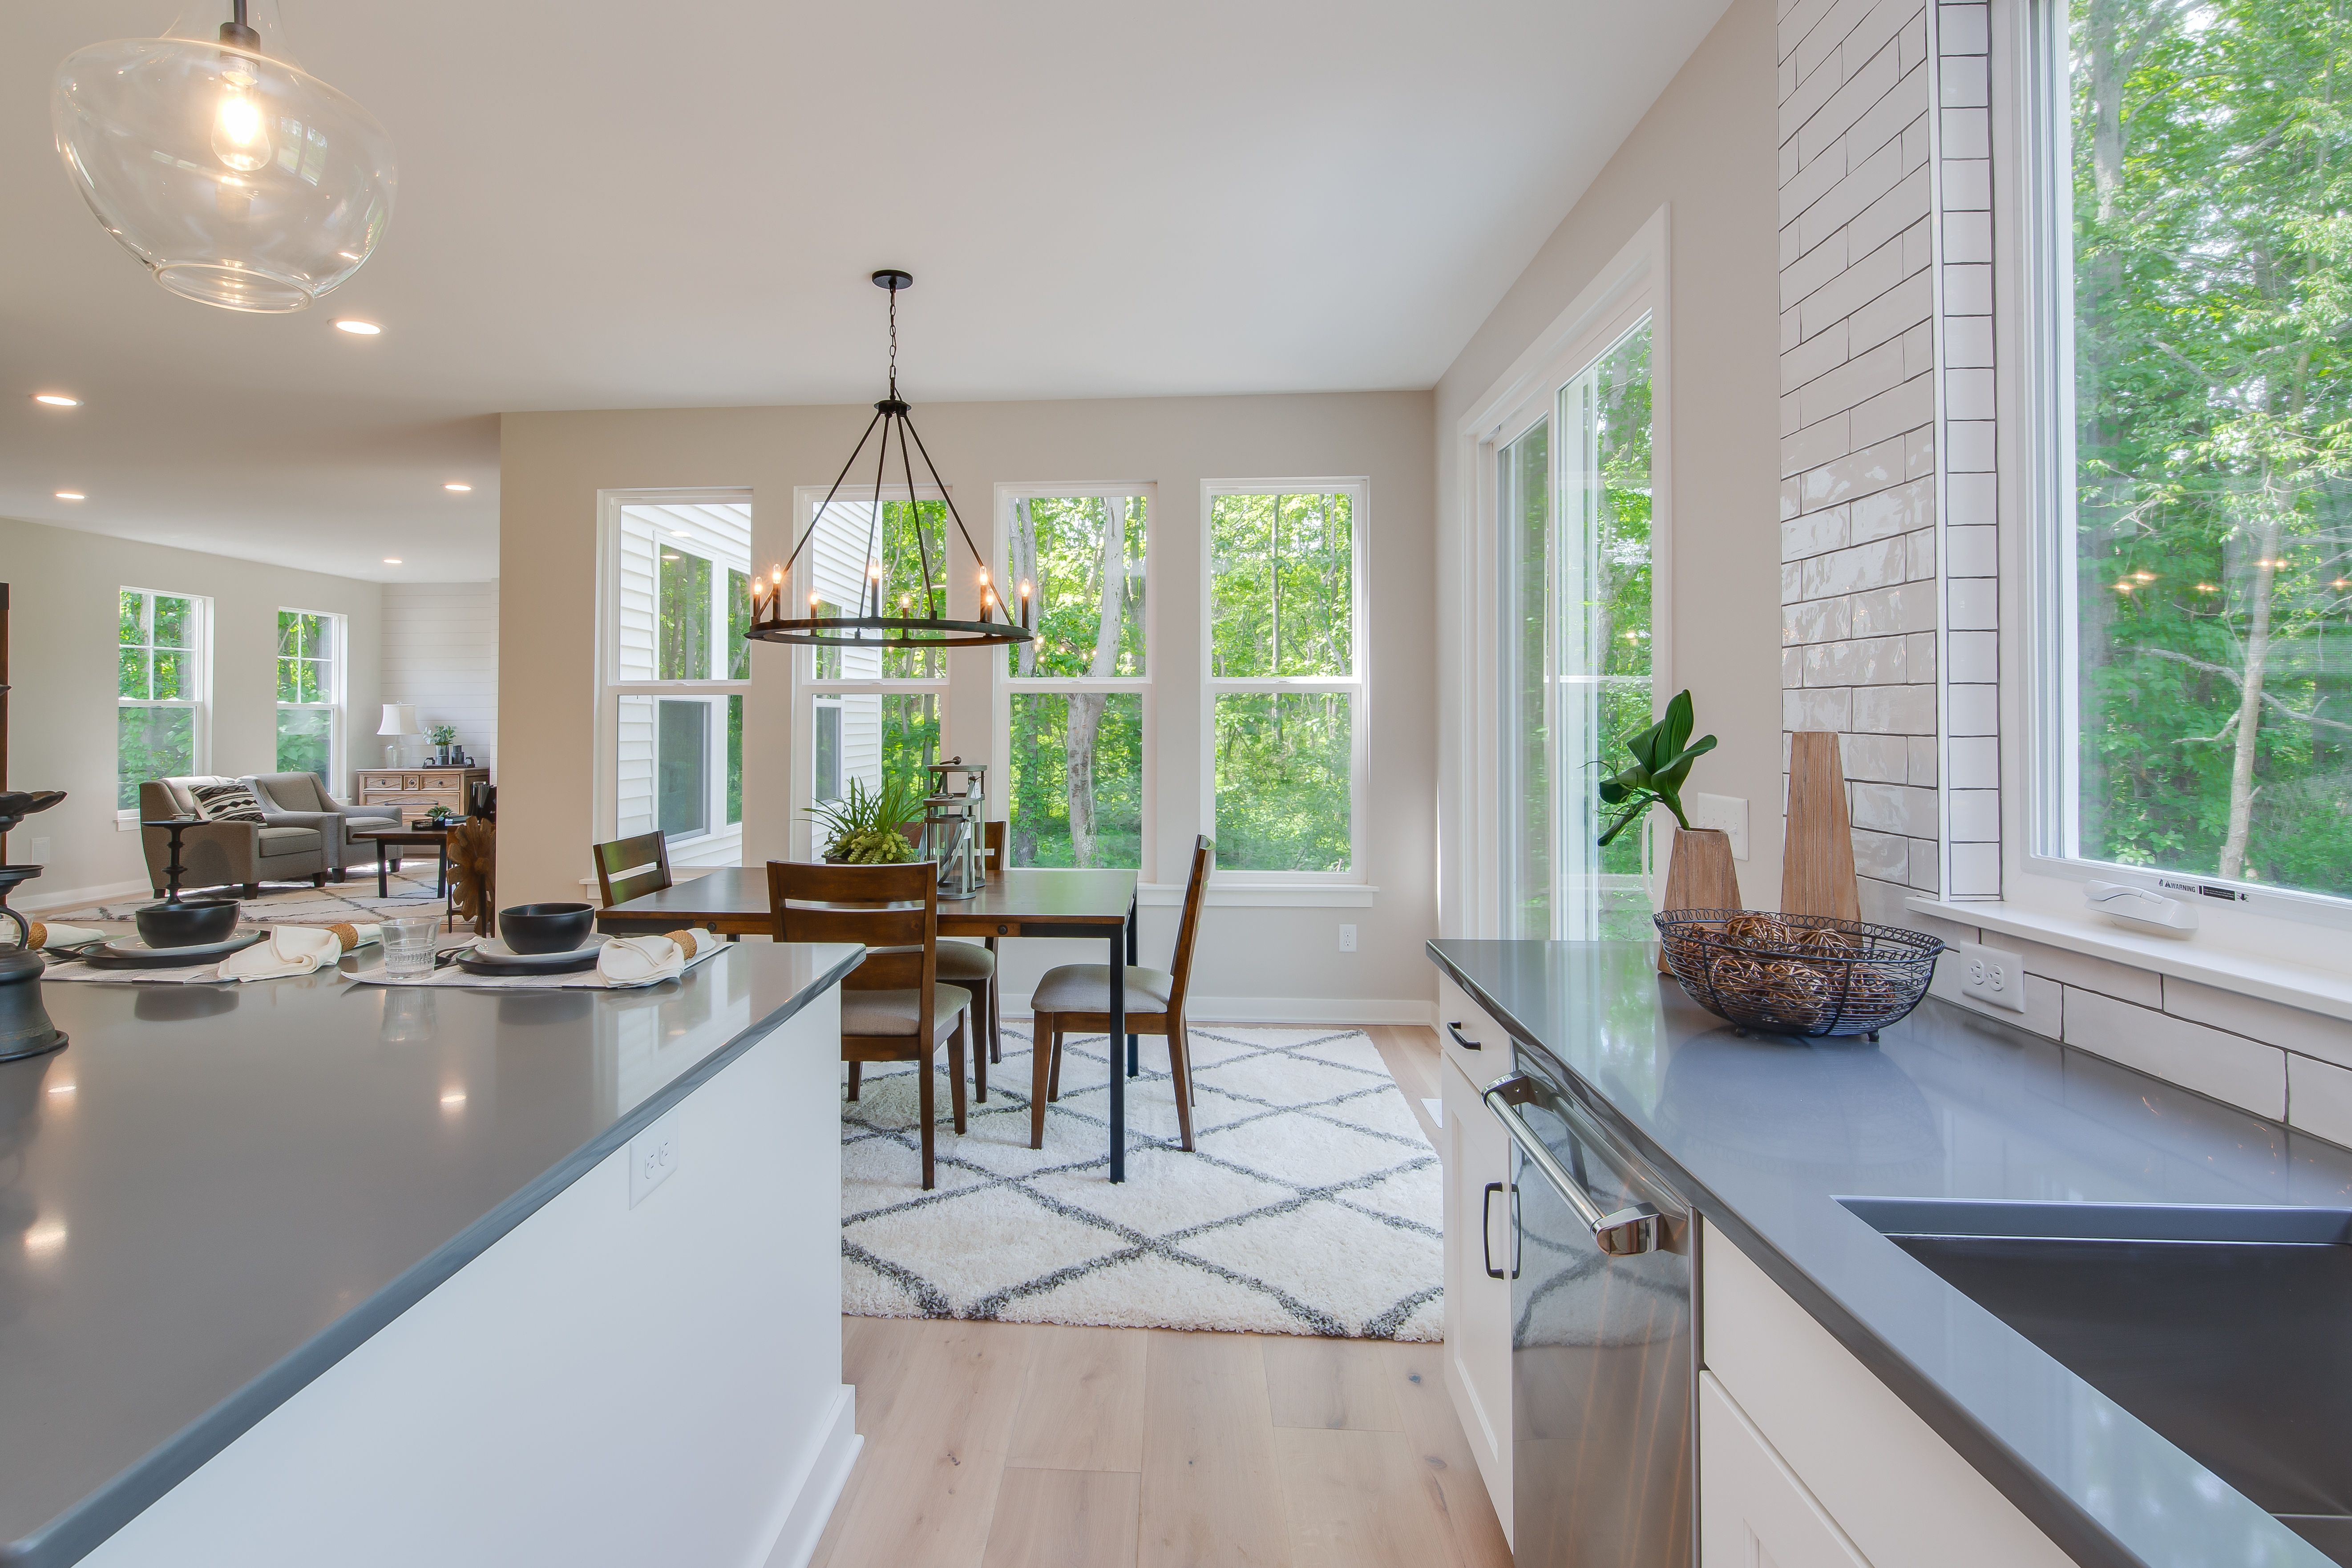 Marshes marshes pinterest dining dining room and subway tile